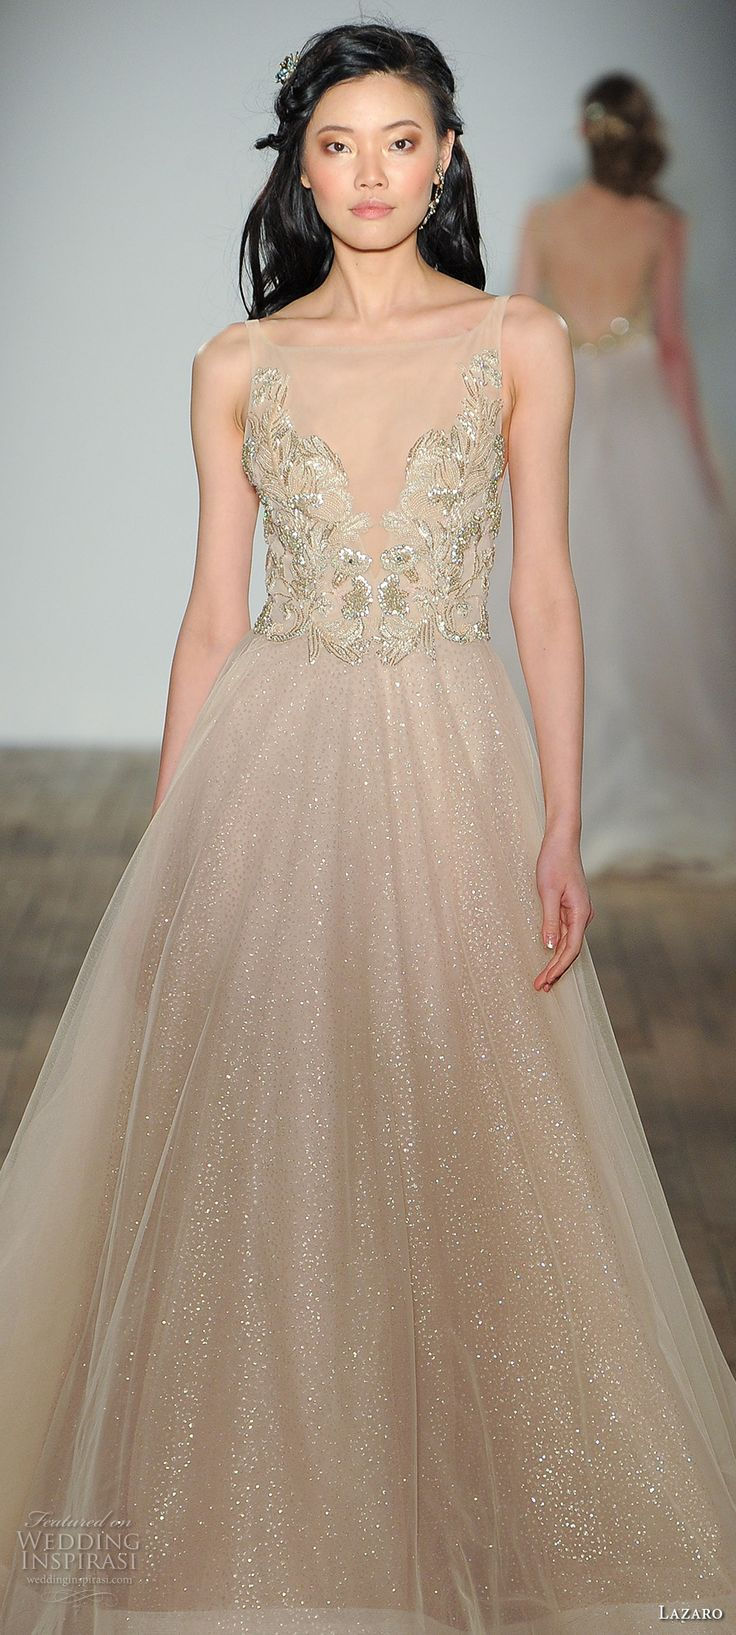 42 best champagne yellow gold wedding gowns images on for Champagne gold wedding dress